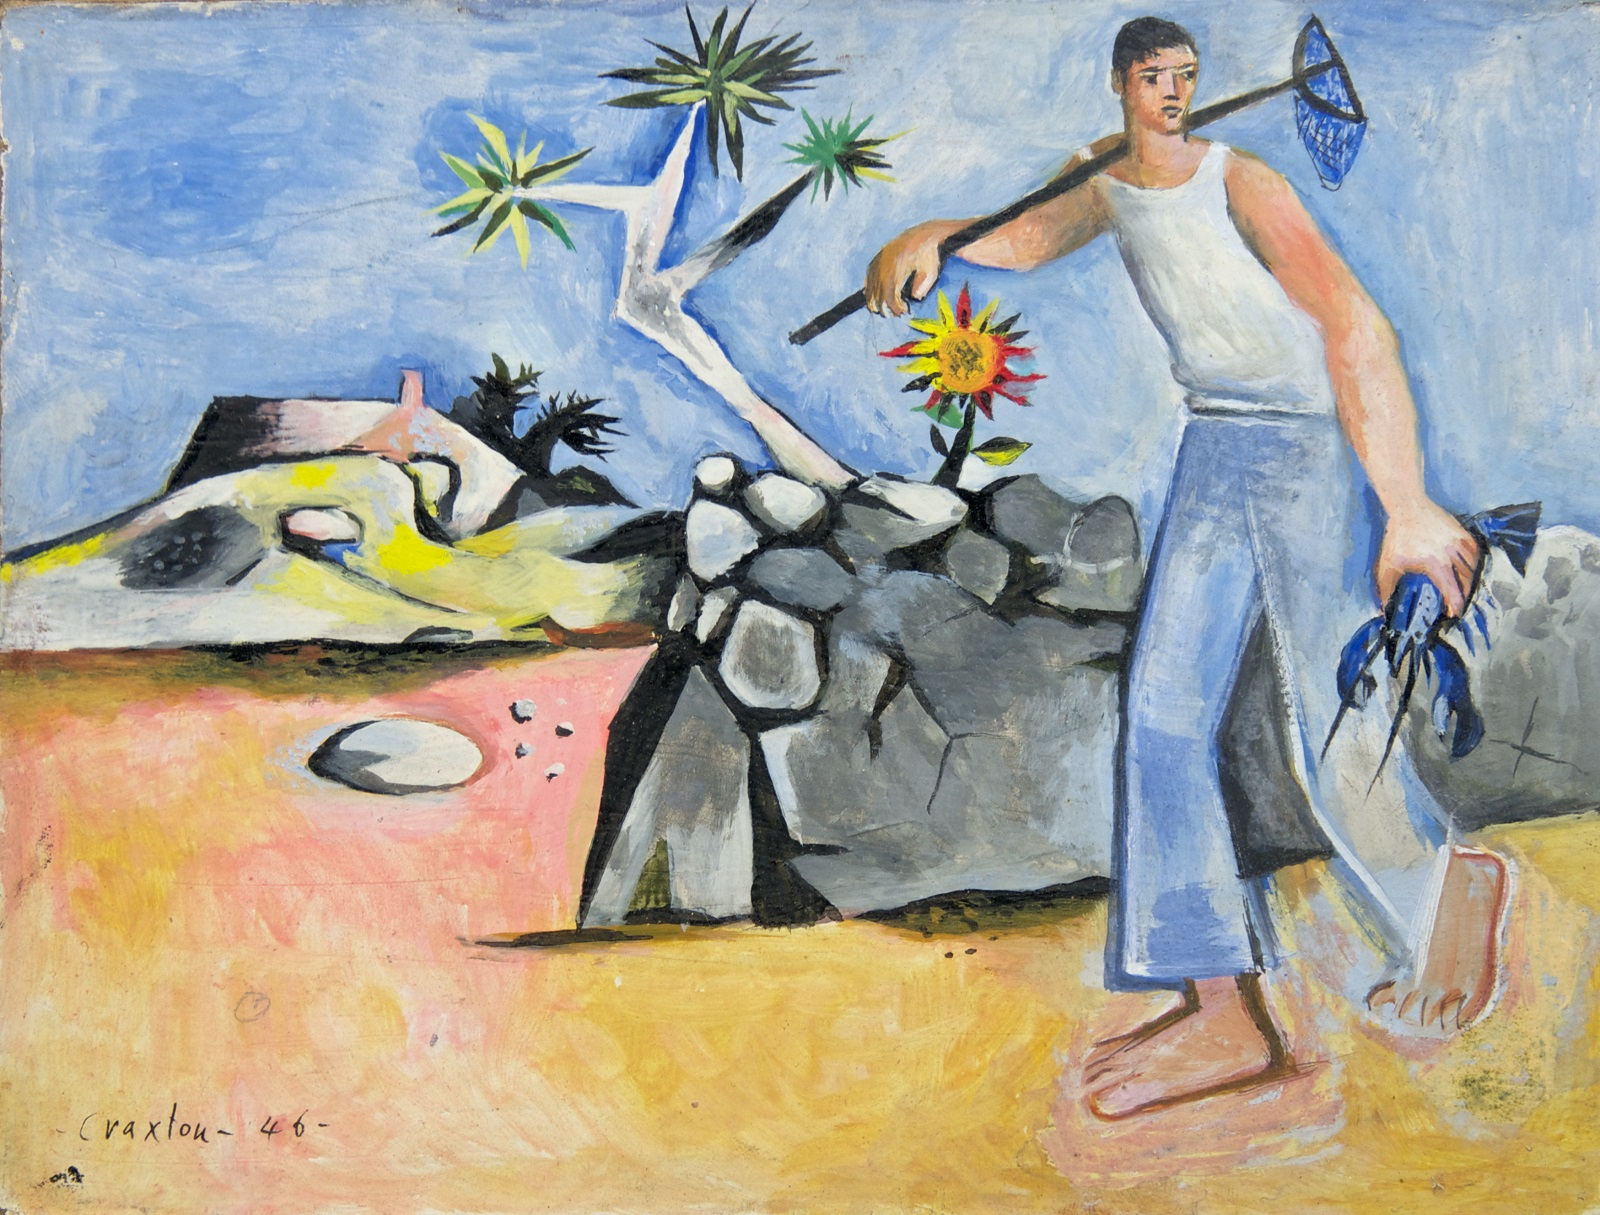 A man wearing blue trousers and a white vest top carrying a lobster net and carrying a blue lobster walks alongside a stone wall in an arid landscape.